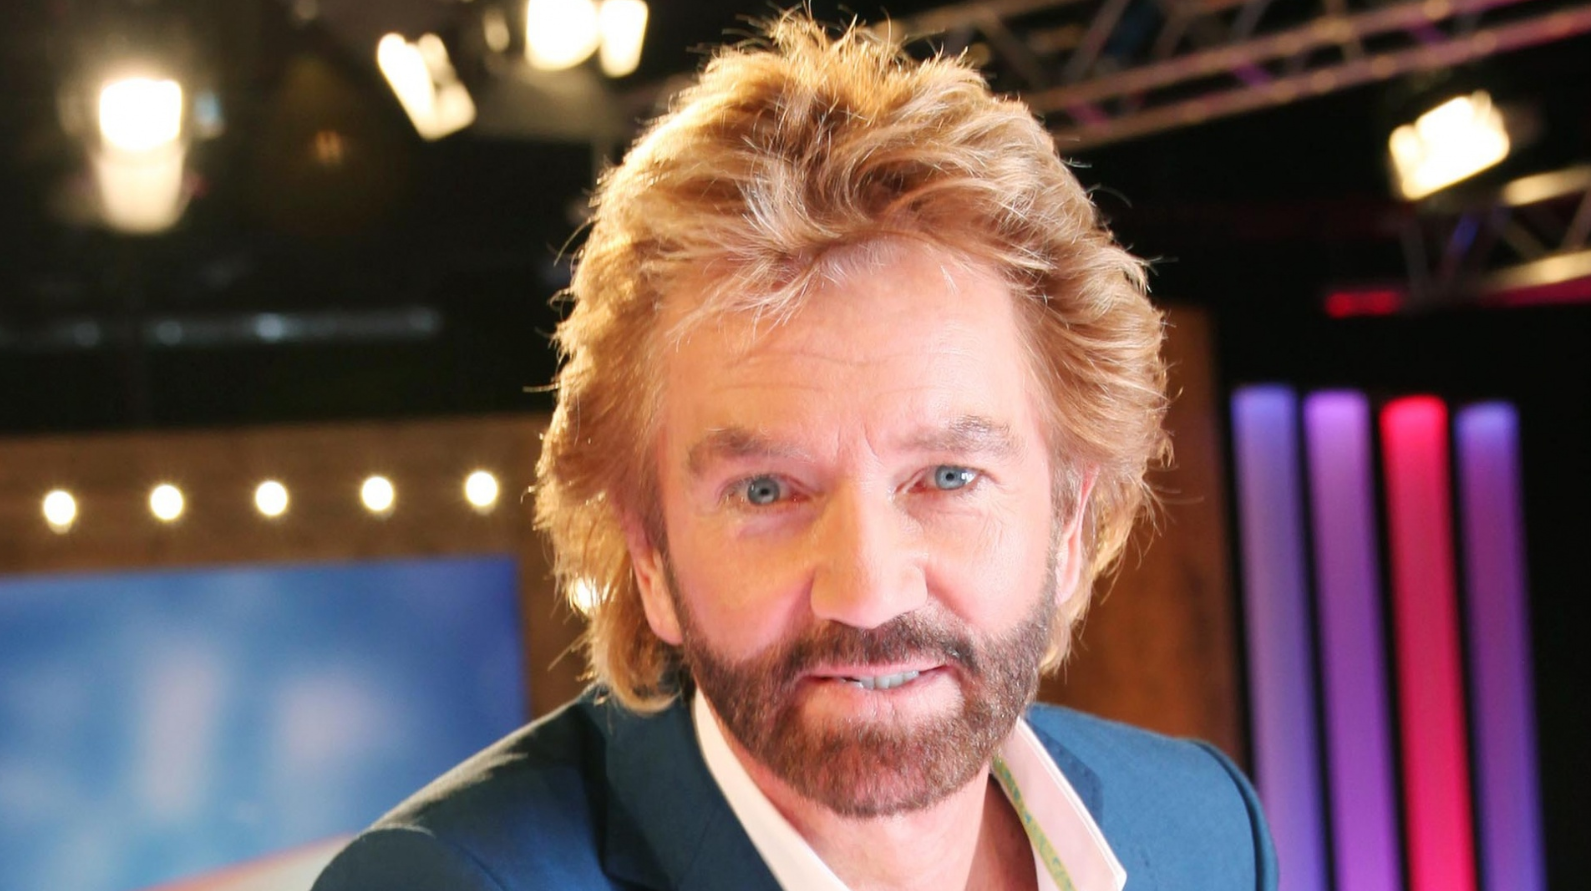 Noel Edmonds reveals prostate cancer diagnosis as he defends cancer caused by 'negative attitude' tweets